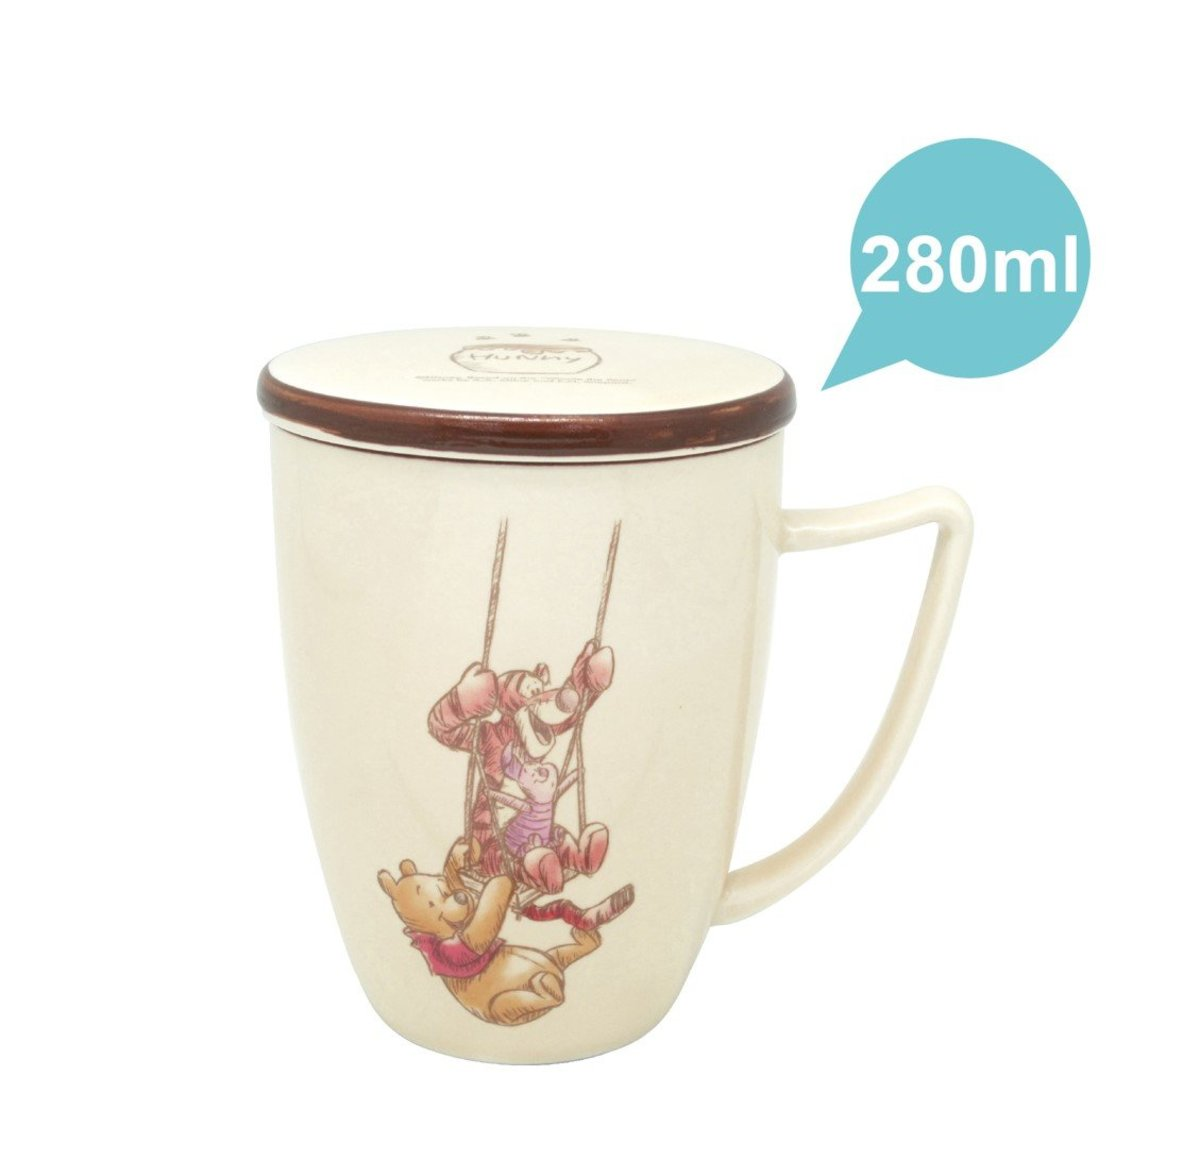 ceramic mug 175ml(Licensed by Disney)